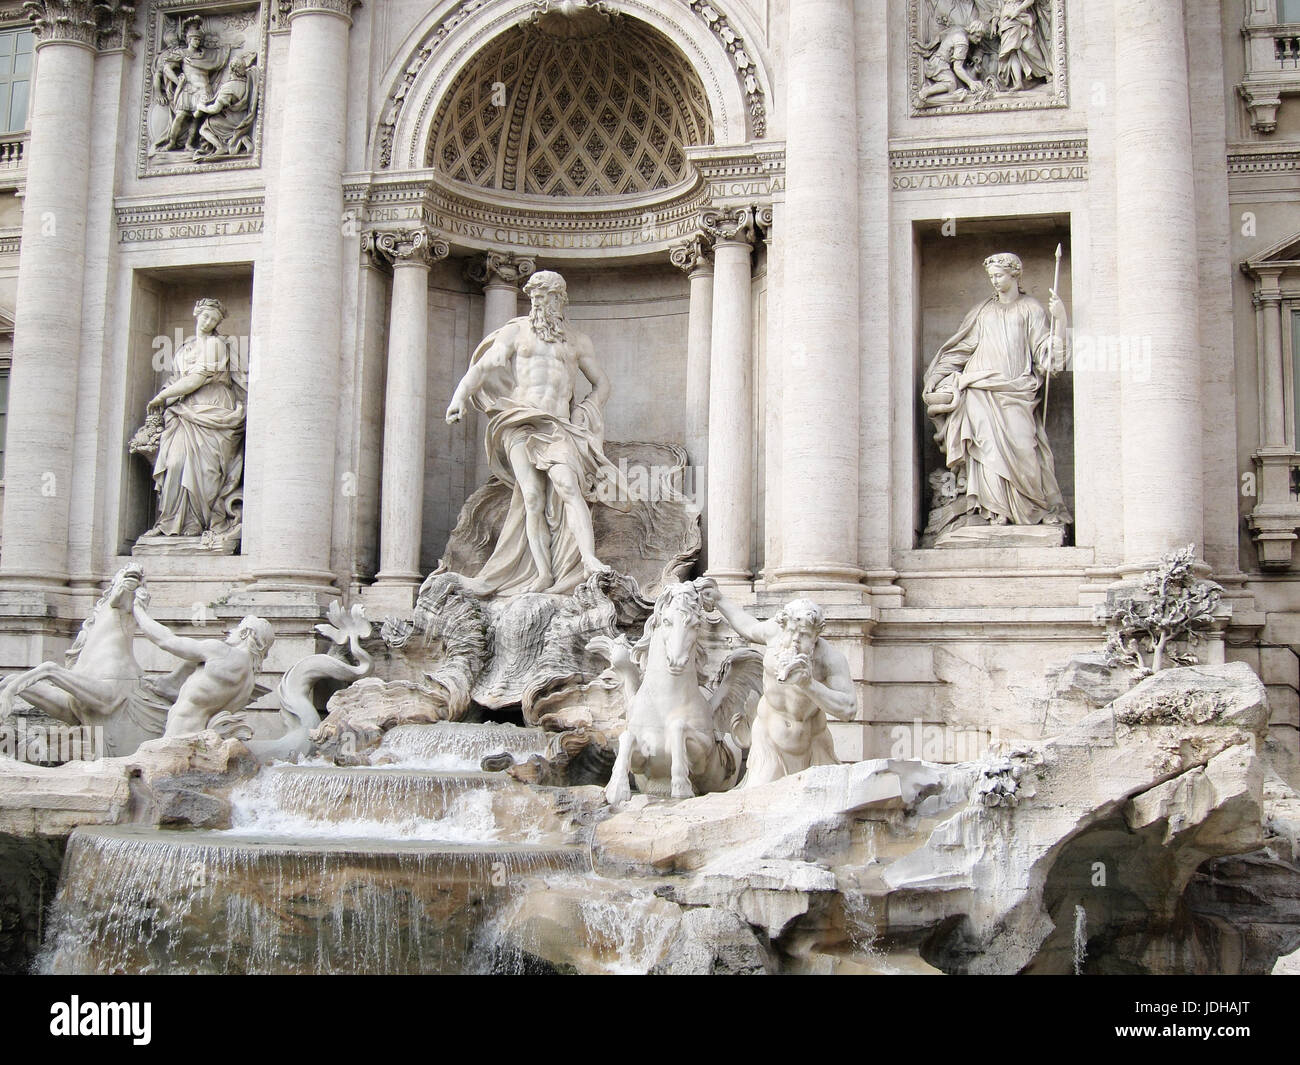 Trevi Fountain, Rome - Stock Image